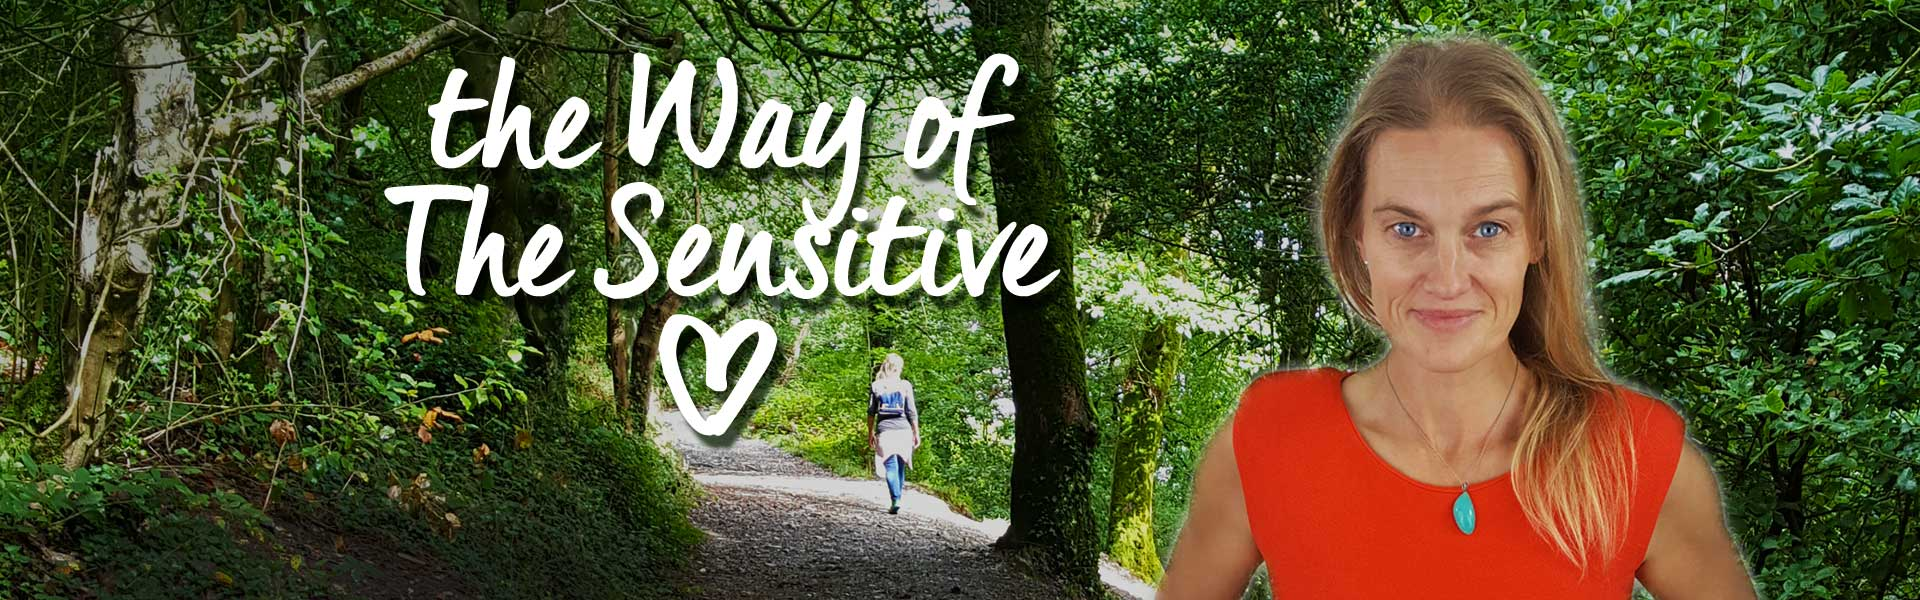 The Way of The Sensitive - Podcast with Cara Wilde